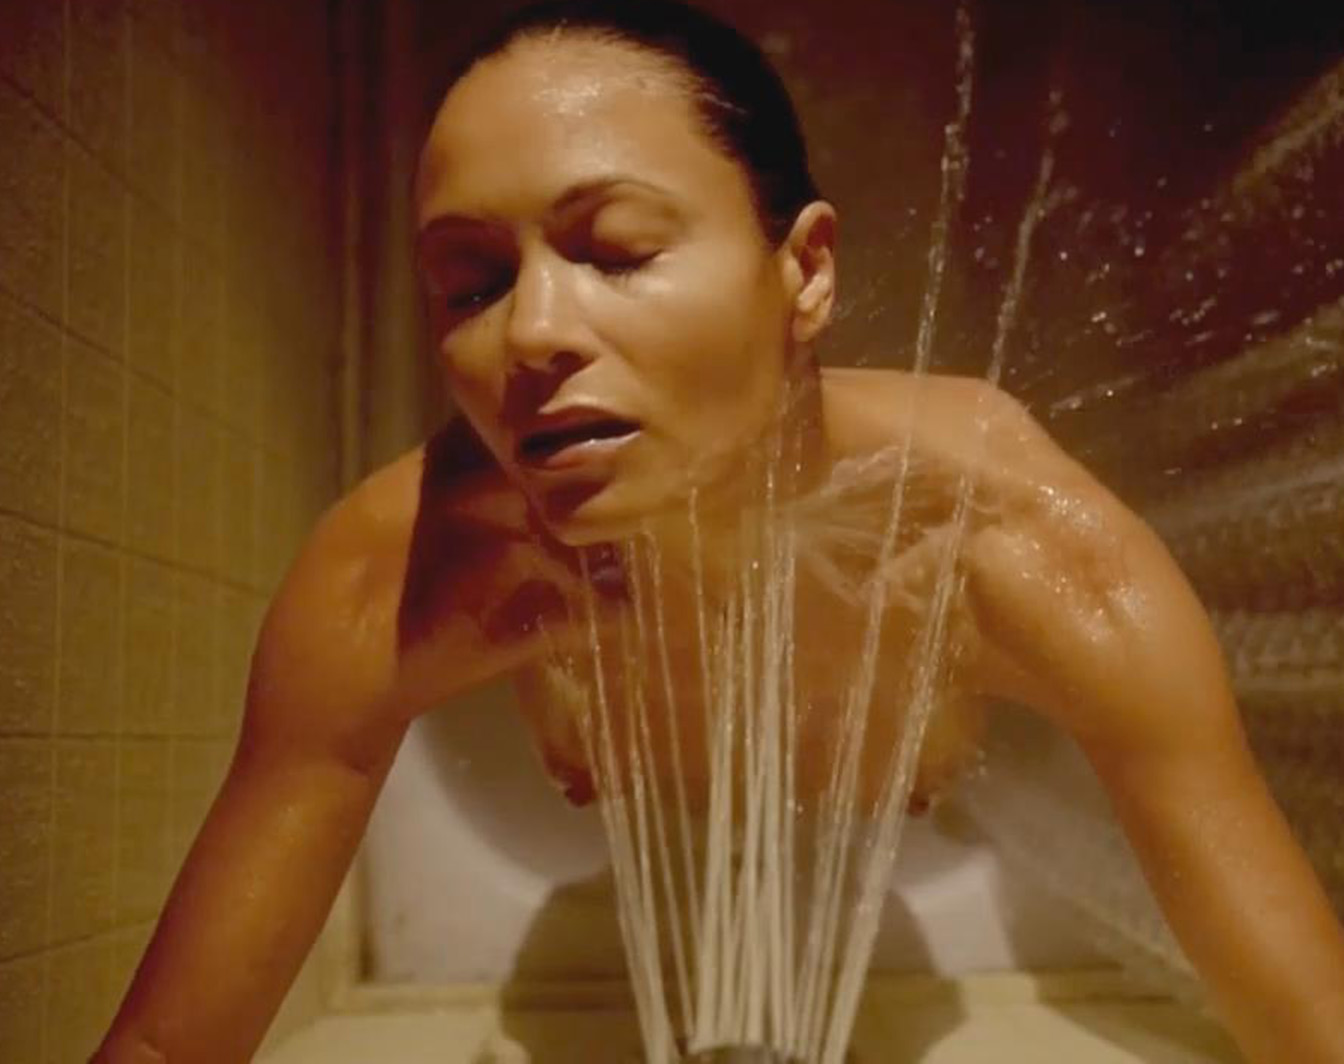 Waste. The thandie newton nude